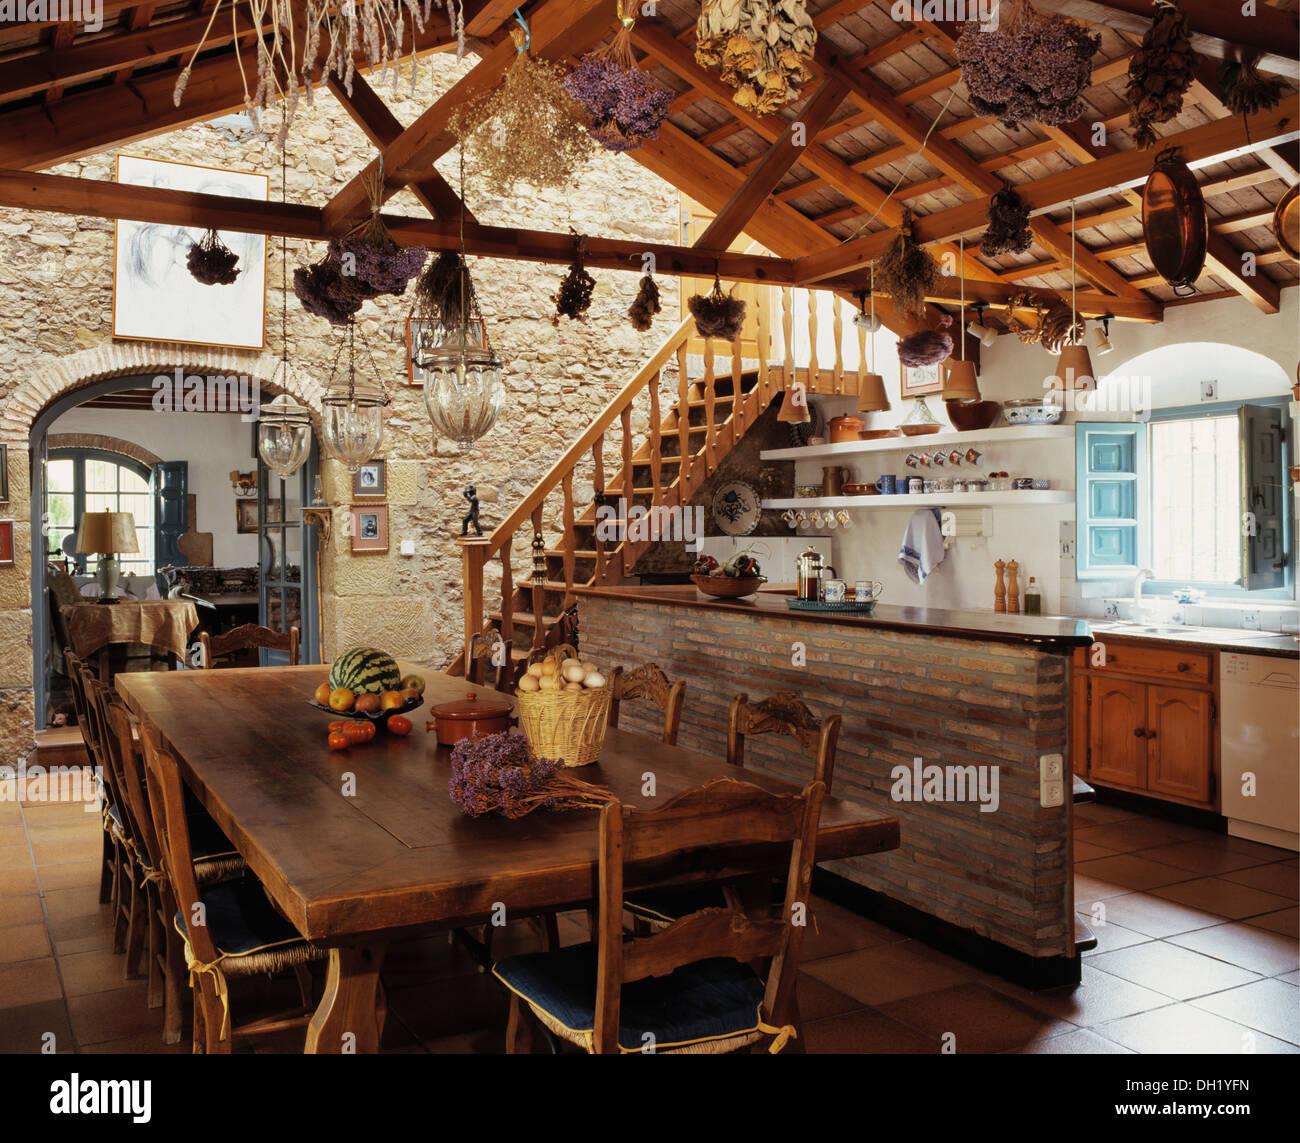 Rustic Wooden Table And Chairs In Dining Area Of Large Spanish Kitchen With  Dried Flowers Hanging From Wooden Ceiling Beams